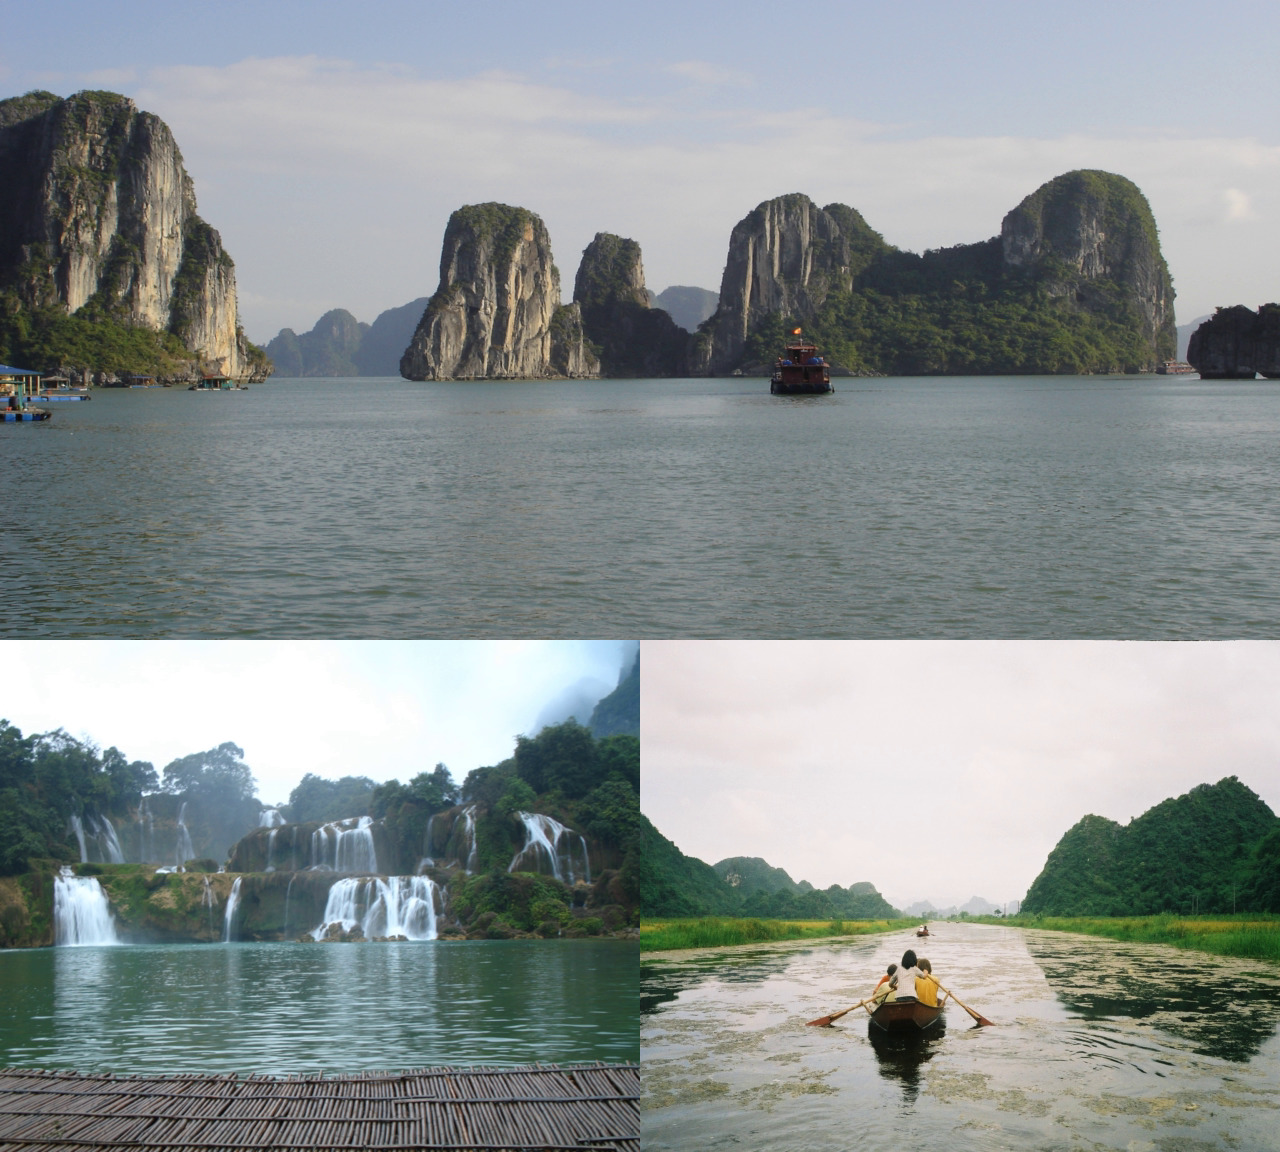 Nature attractions in Vietnam, clockwise from top: Hạ Long Bay, Yến River and Bản-Giốc Waterfalls.